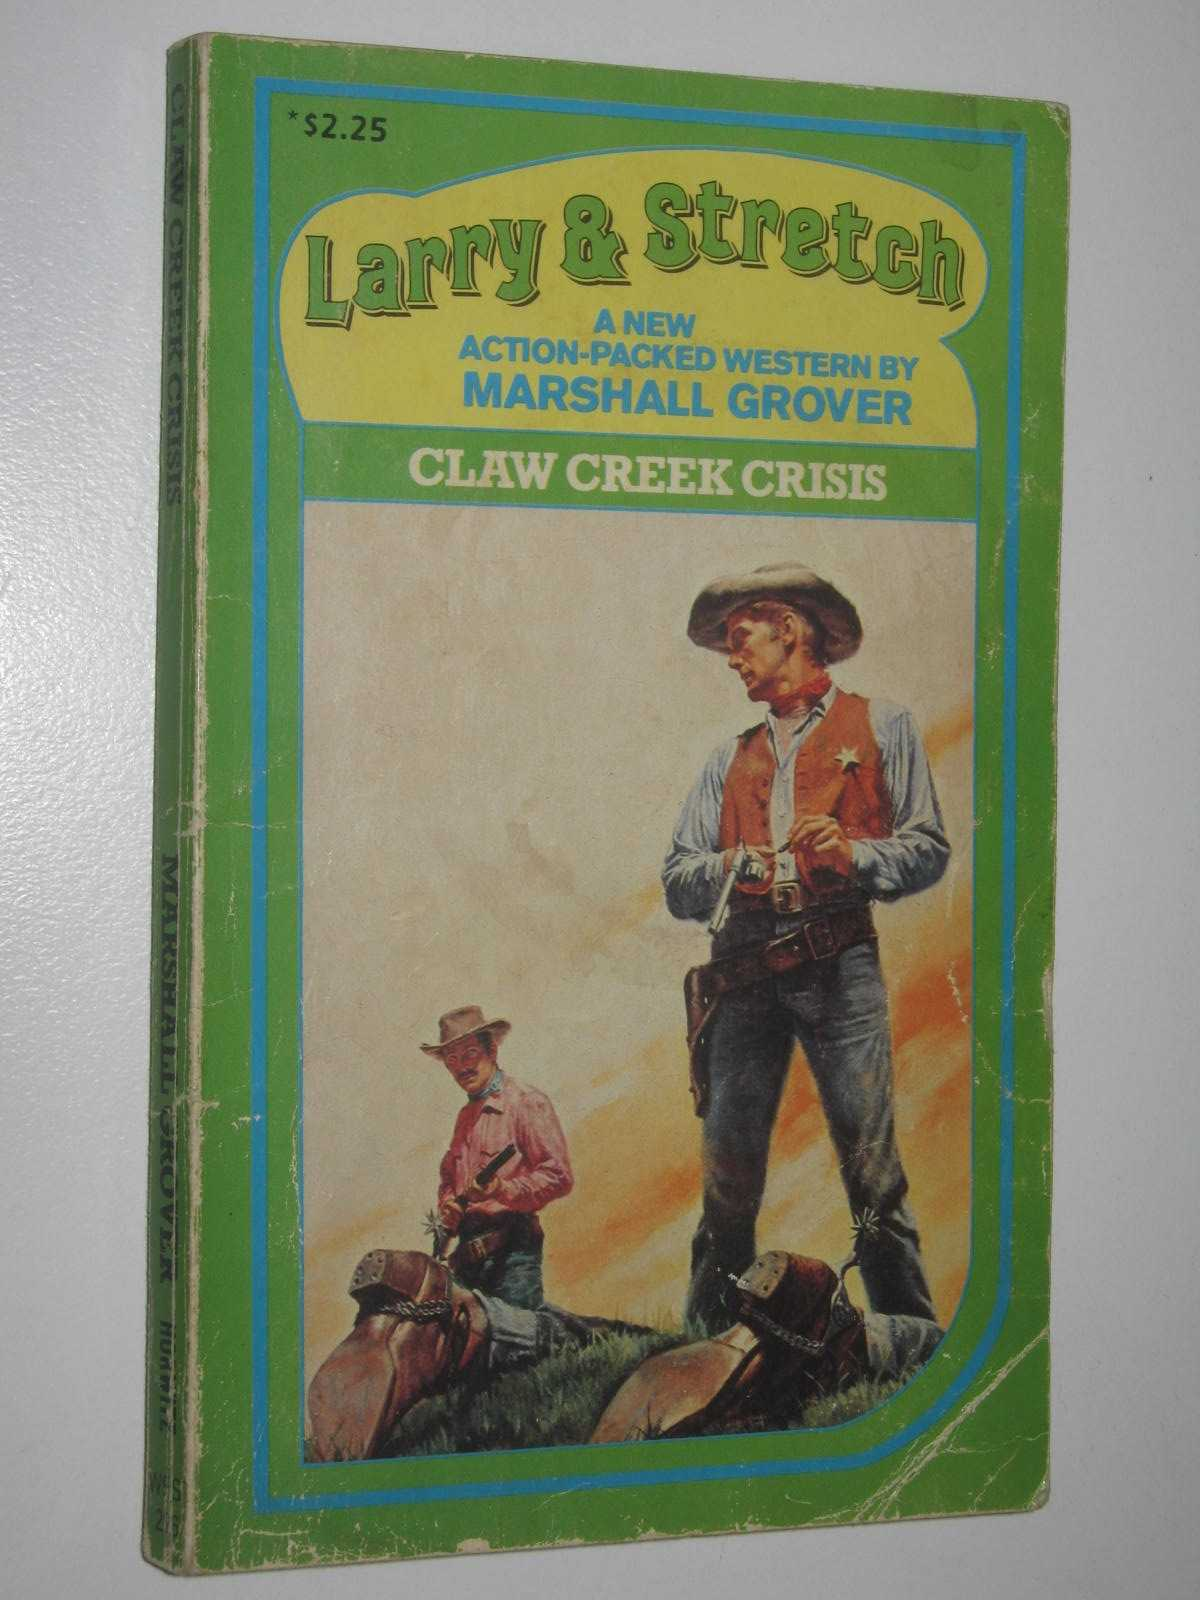 Image for Claw Creek Crisis - Larry and Stretch Series #226